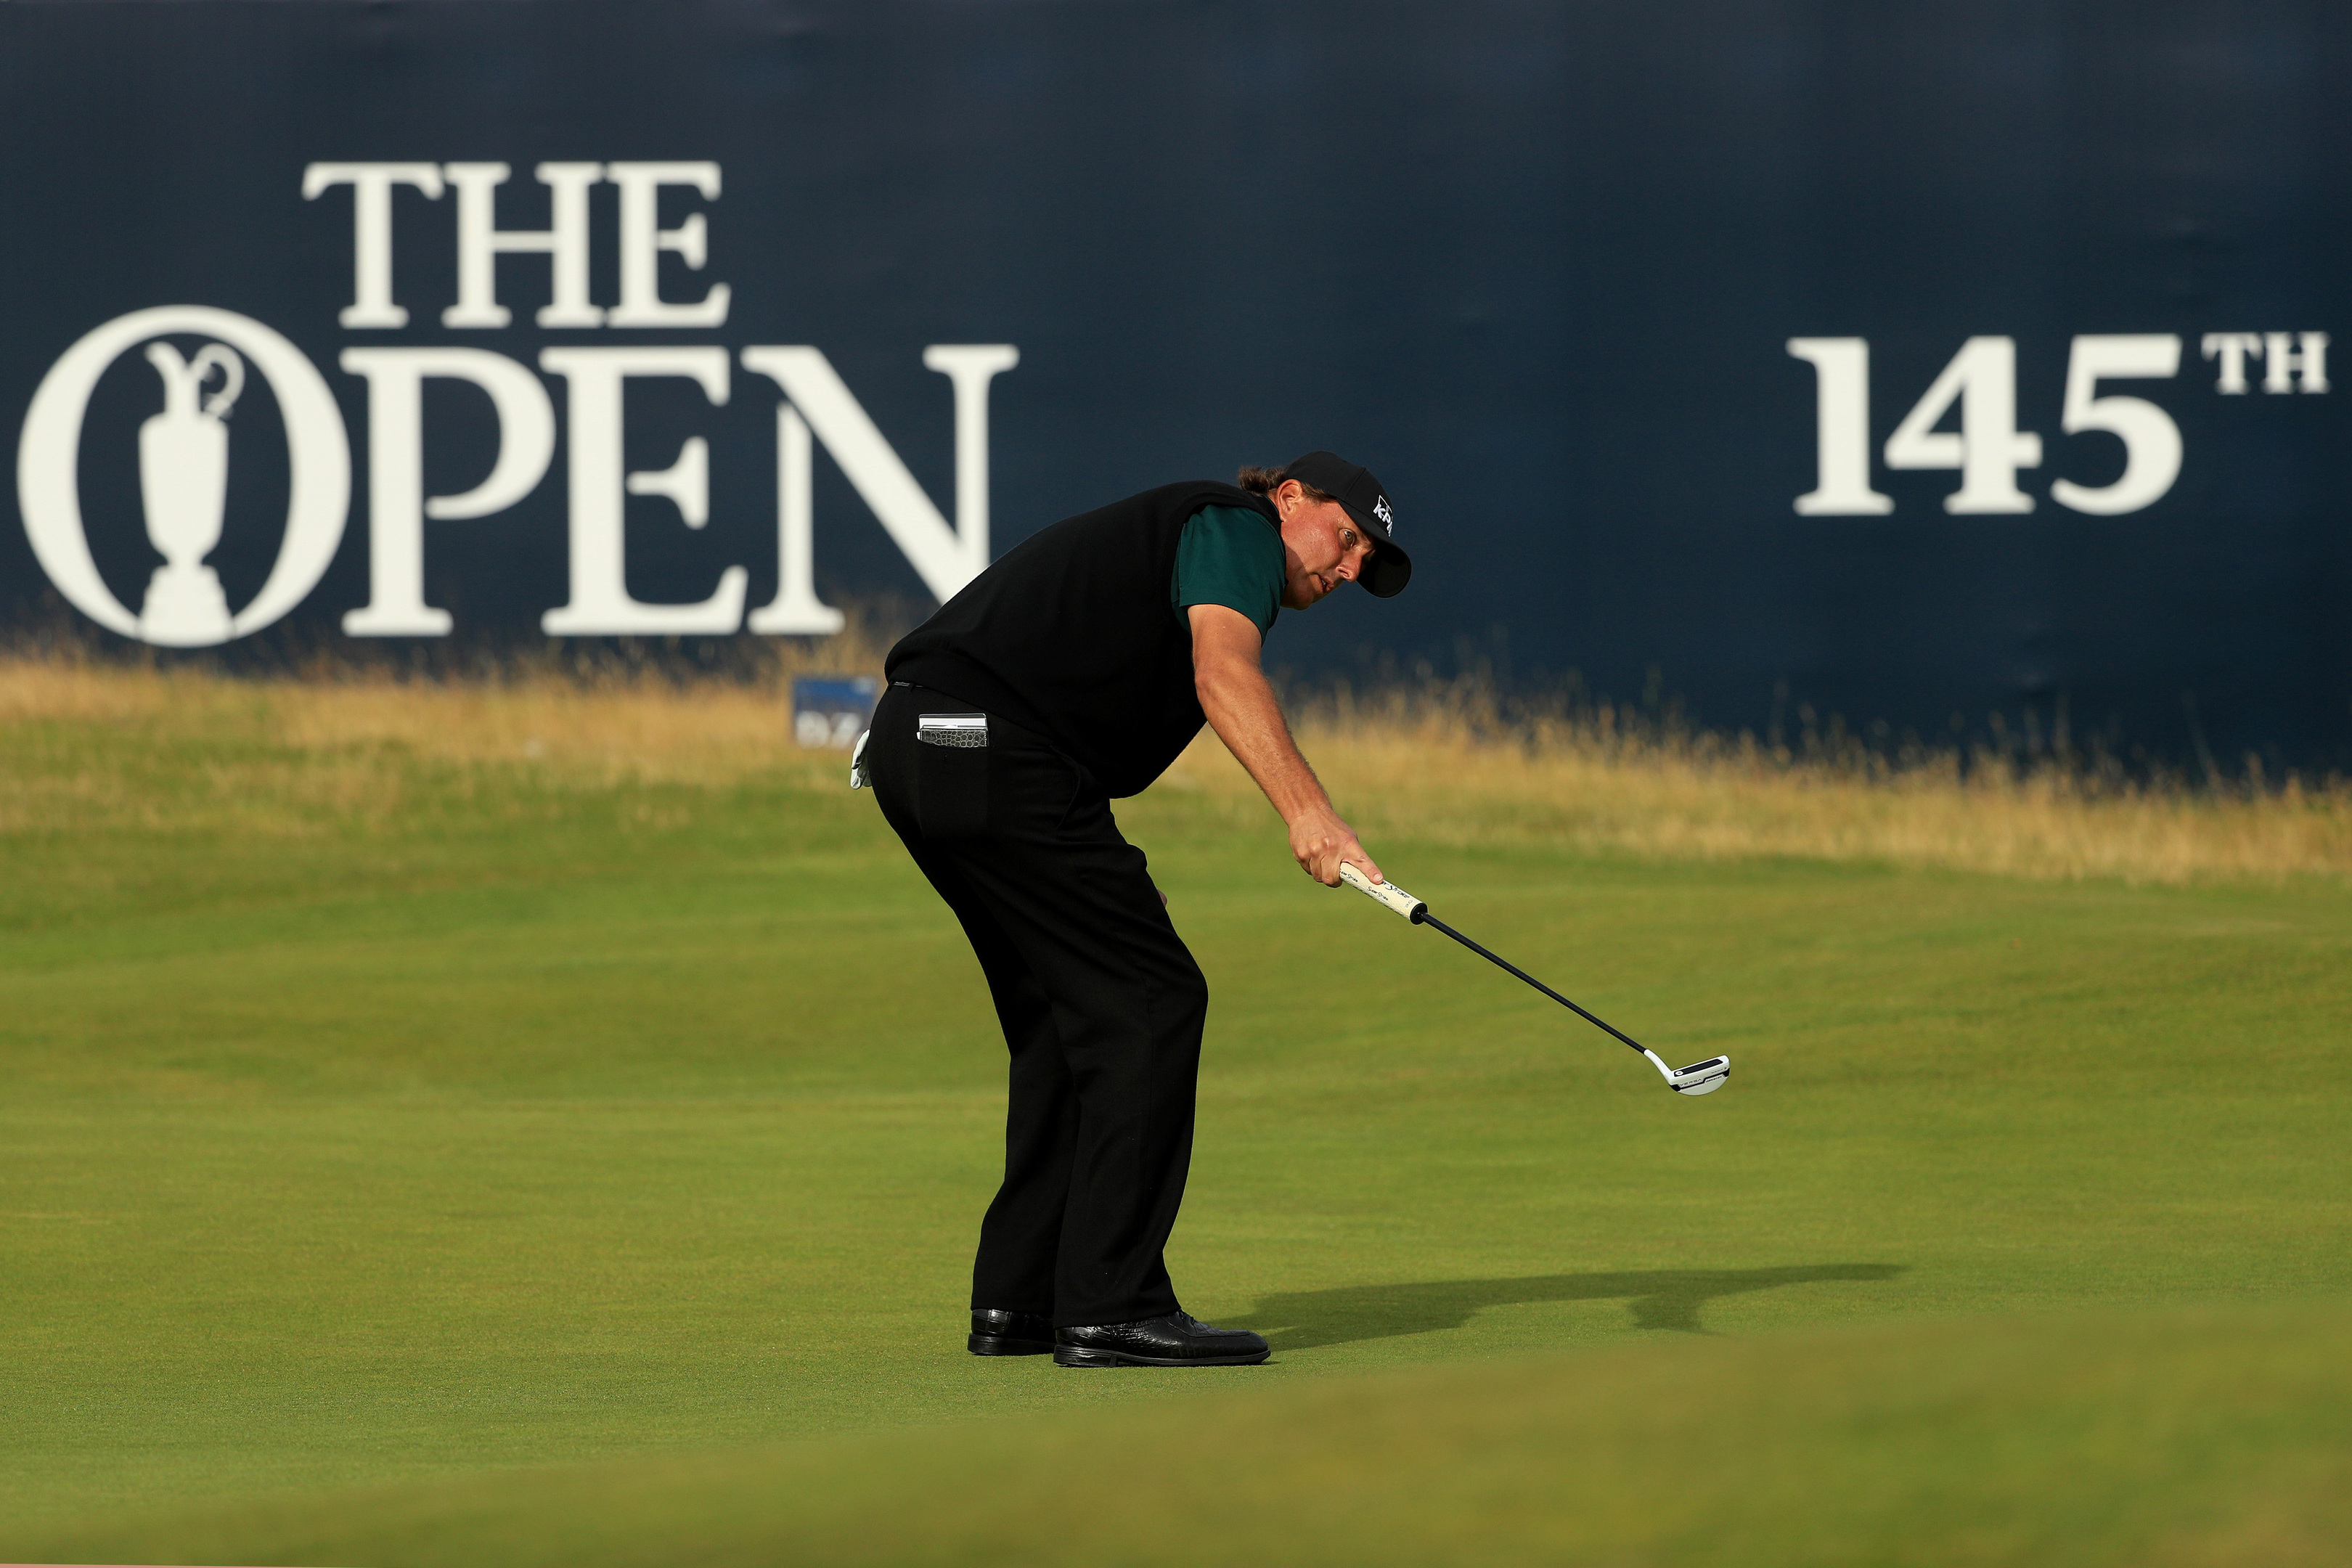 Phil Mickelson watches in disbelief as his putt for an historic 62 lips out on the 18th at Royal Troon.